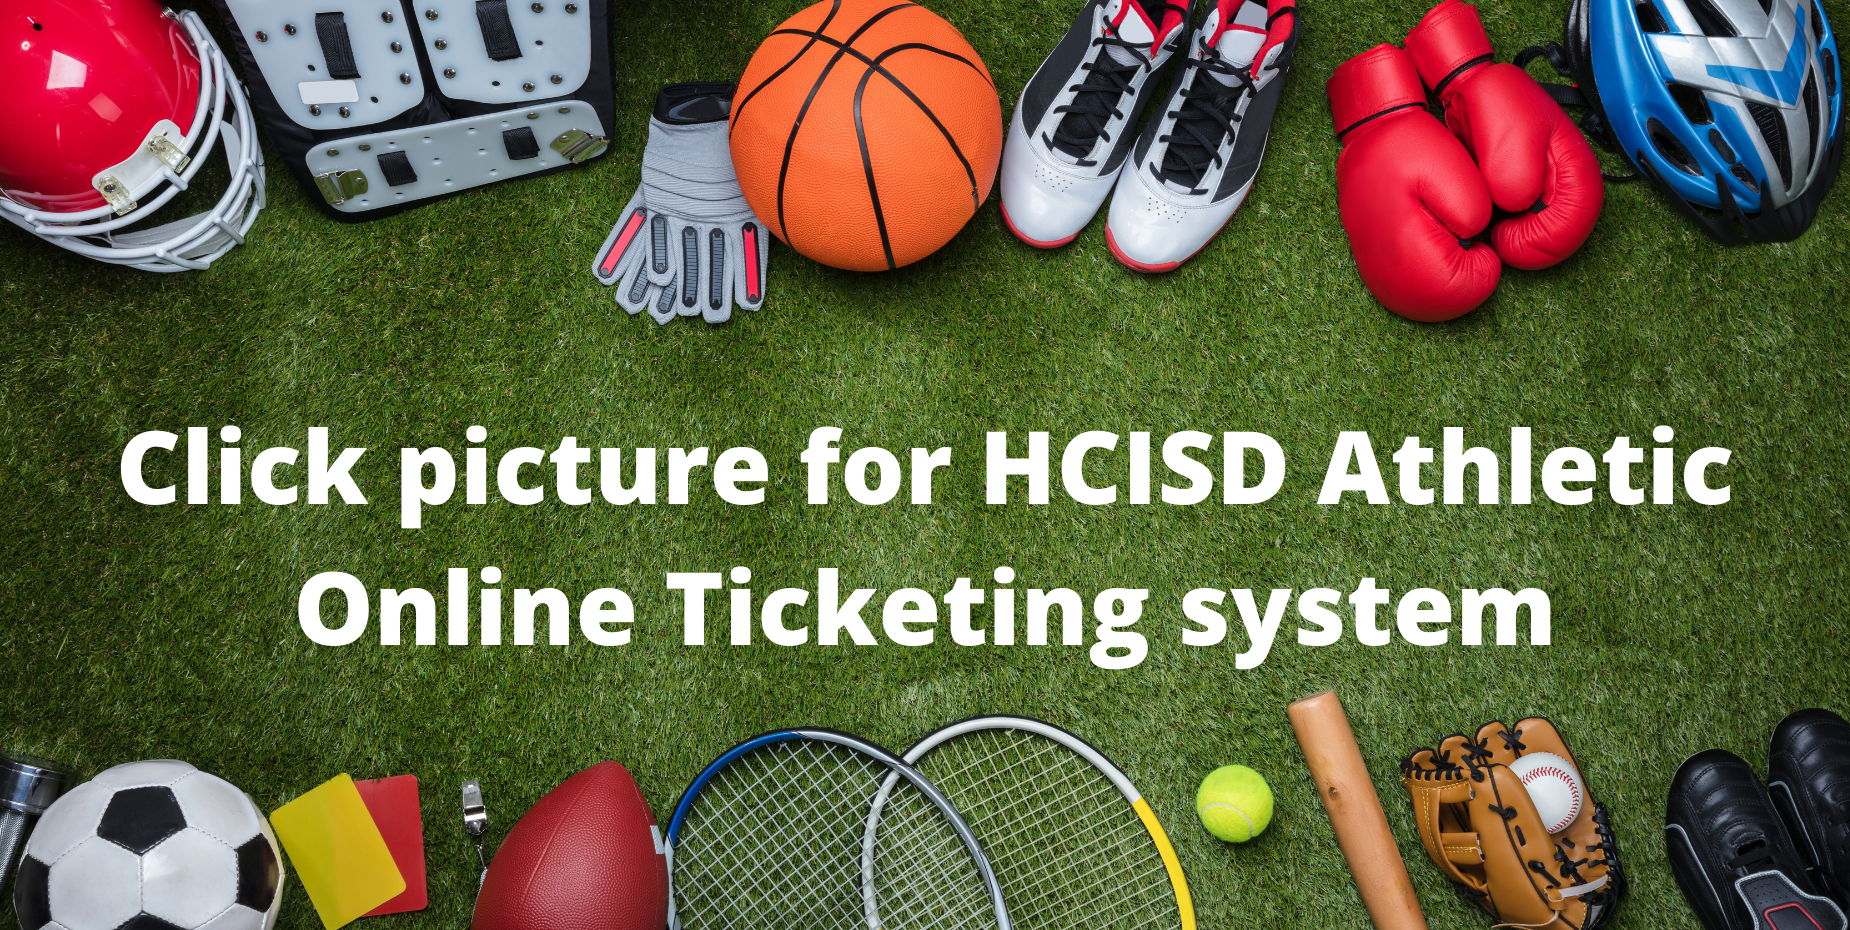 image shows various athletic gear. click picture for online ticket system.